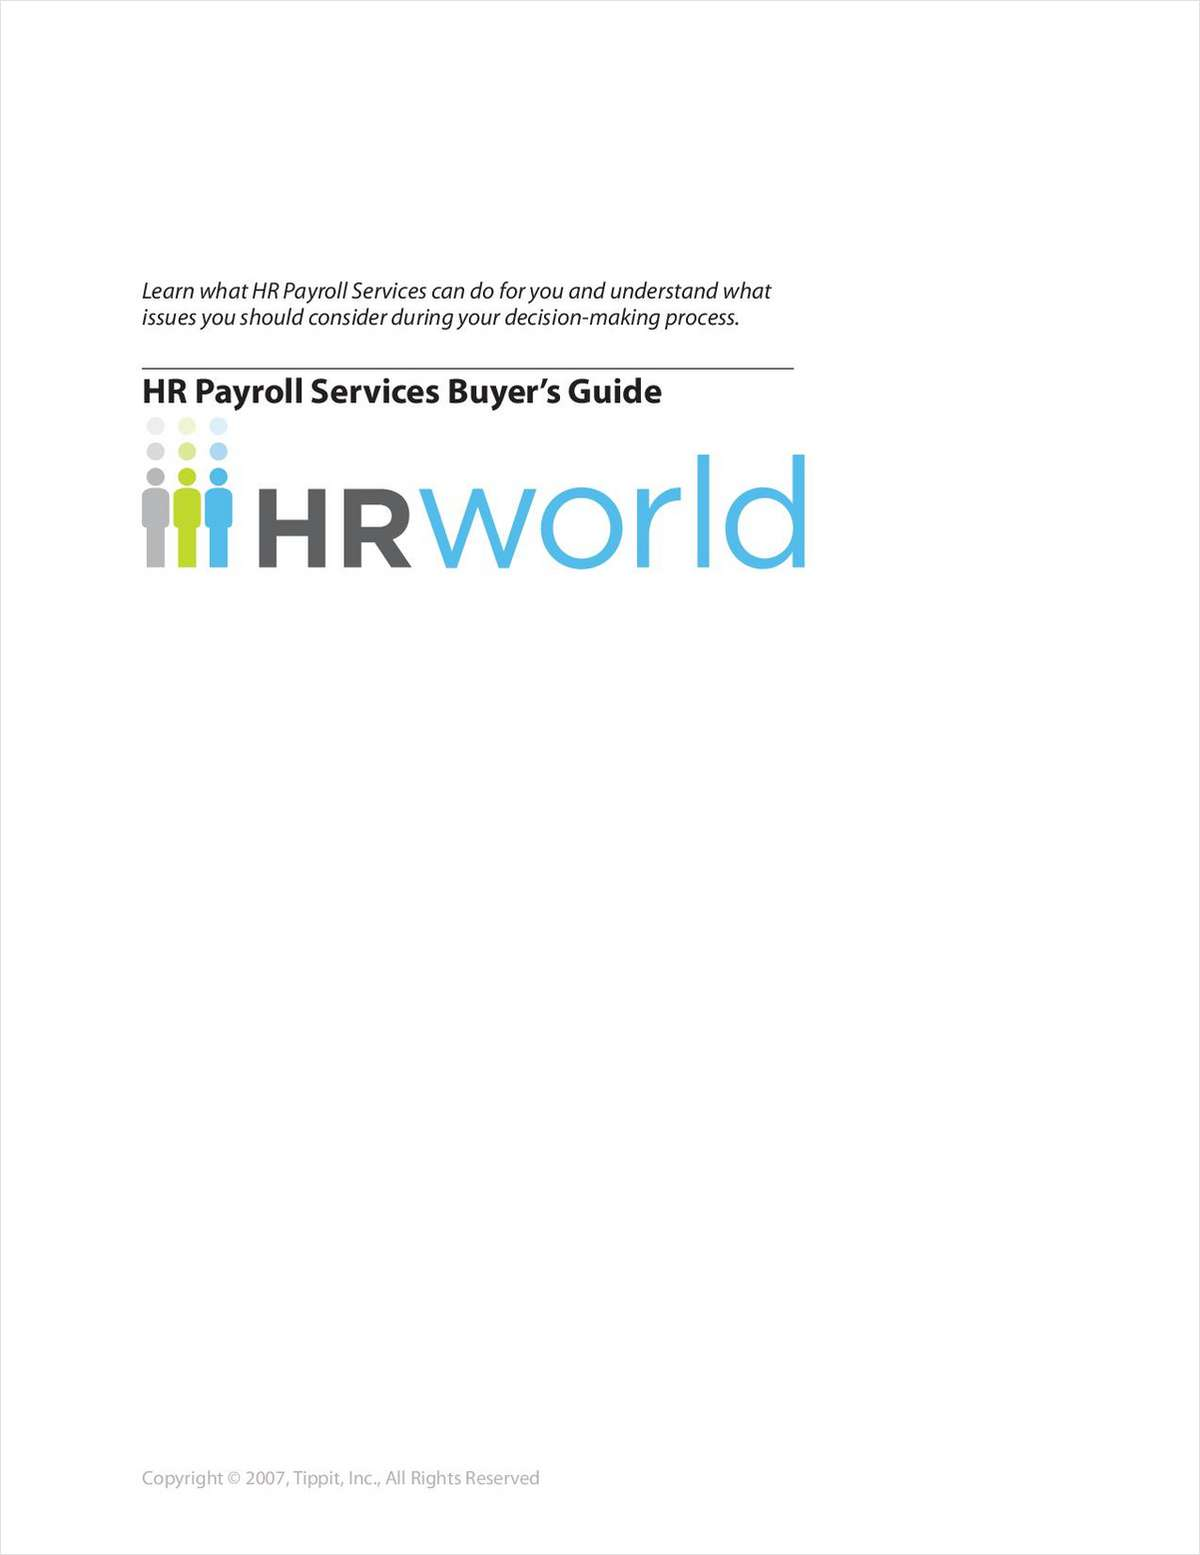 The HR World Payroll Services Buyer's Guide